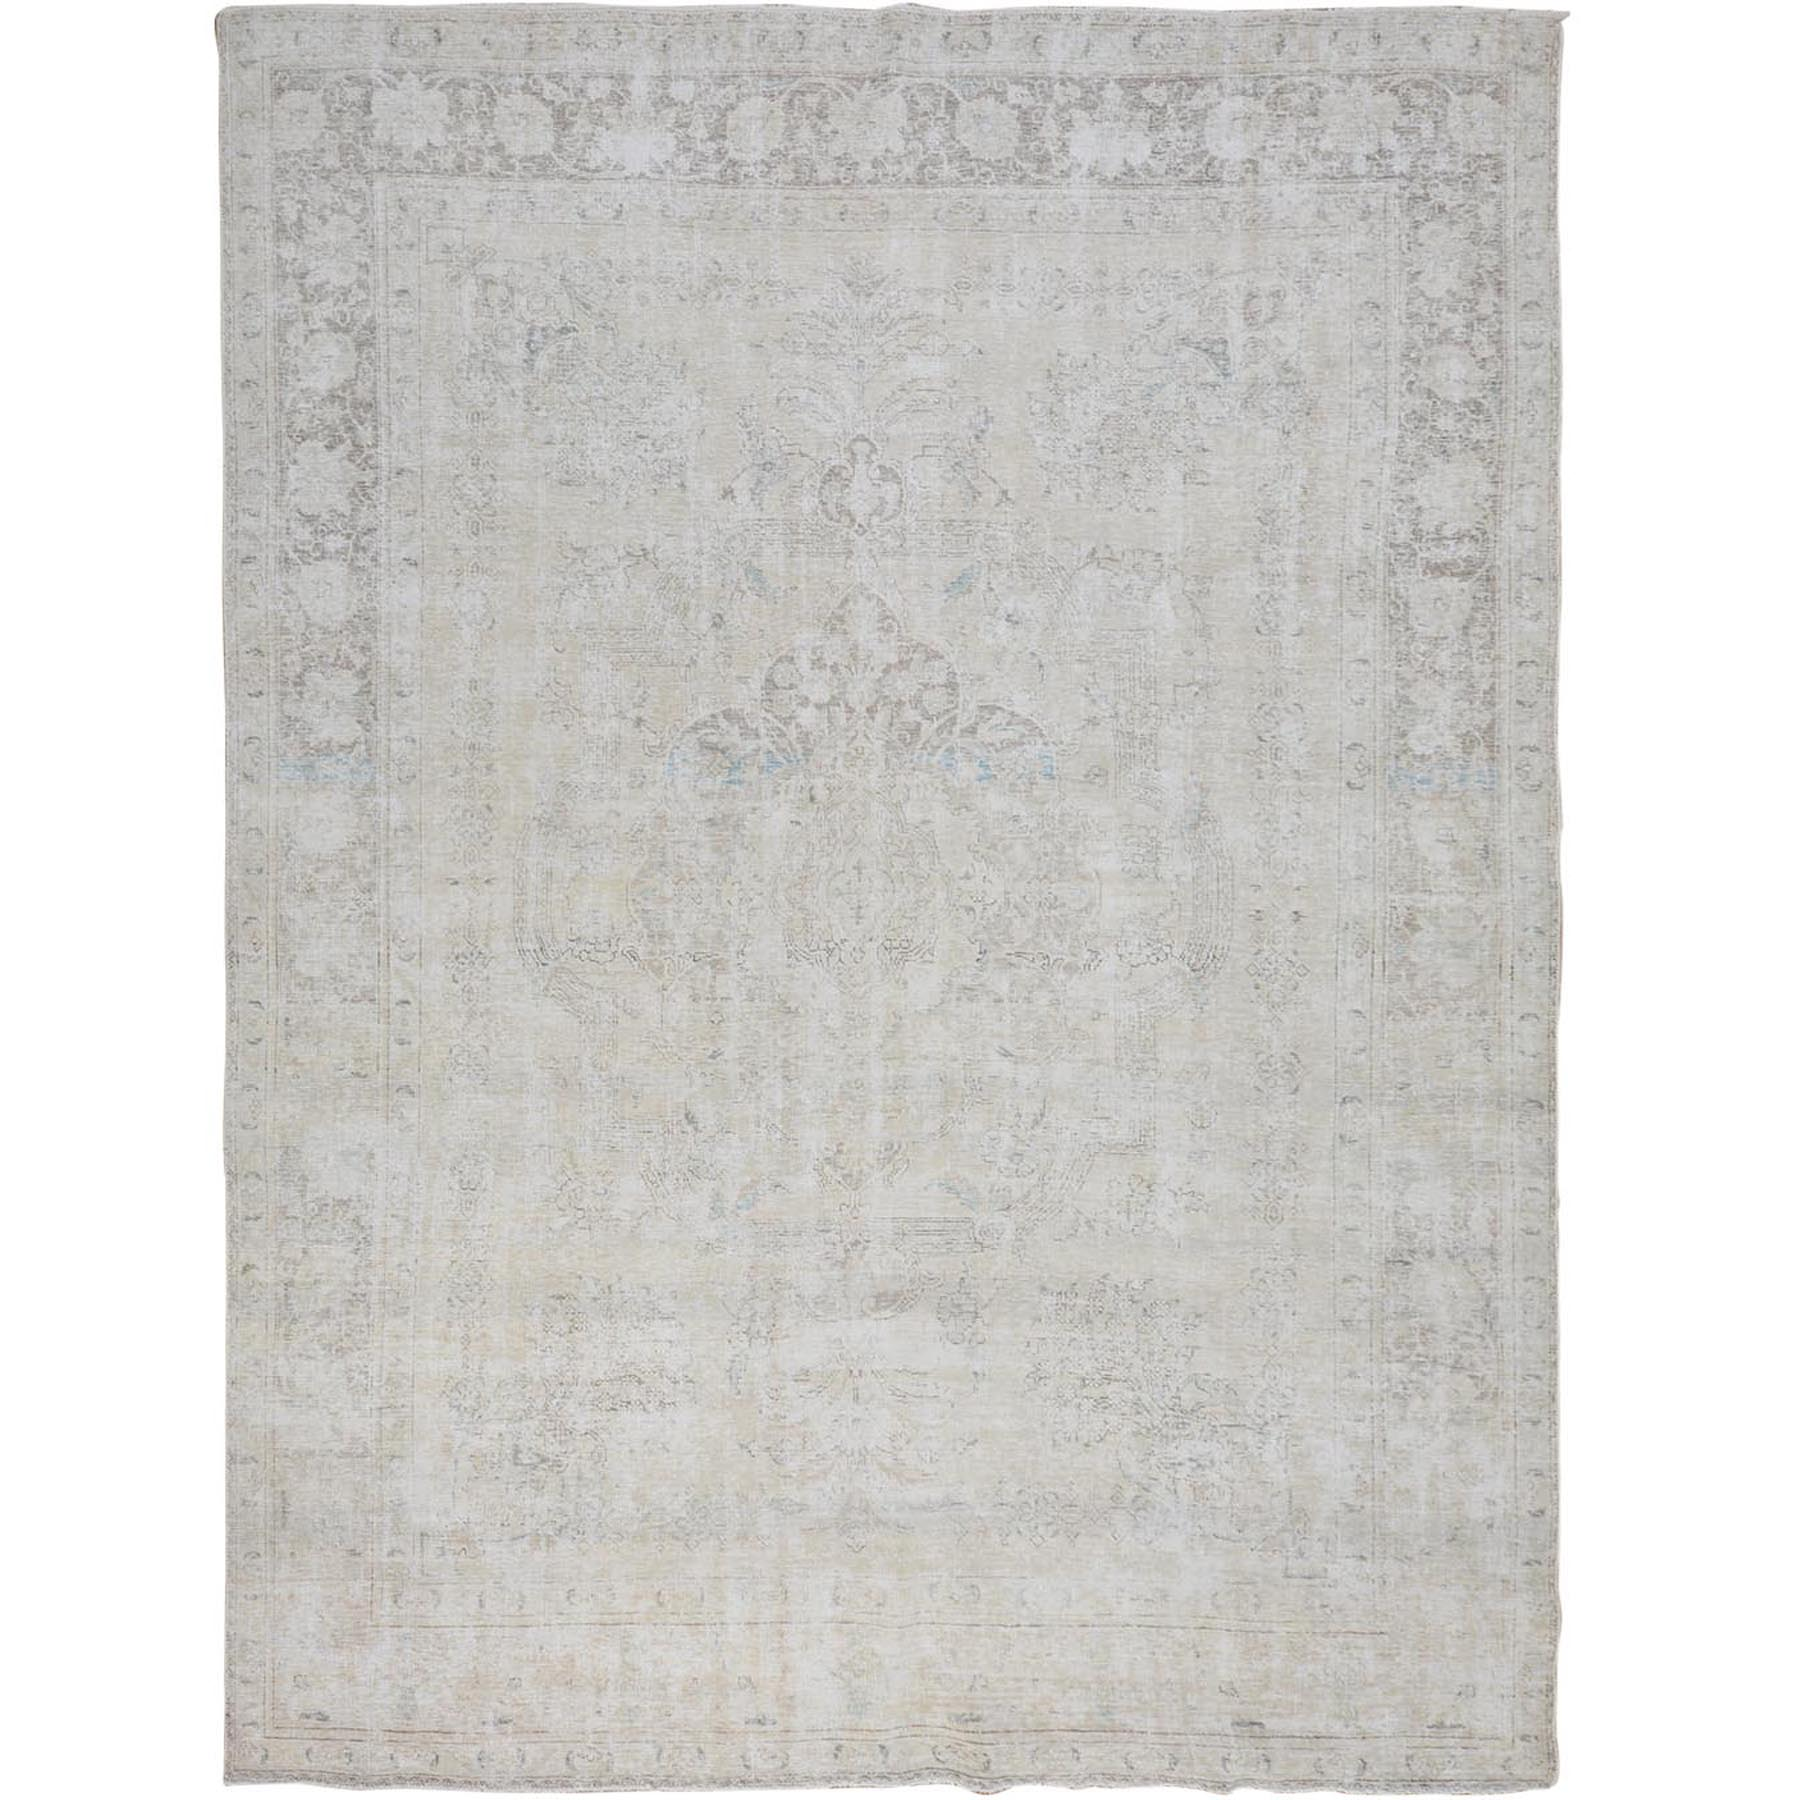 "9'4""x12'3"" White Overdyed Worn Down Persian Tabriz Pure Wool Hand Woven Oriental Rug"